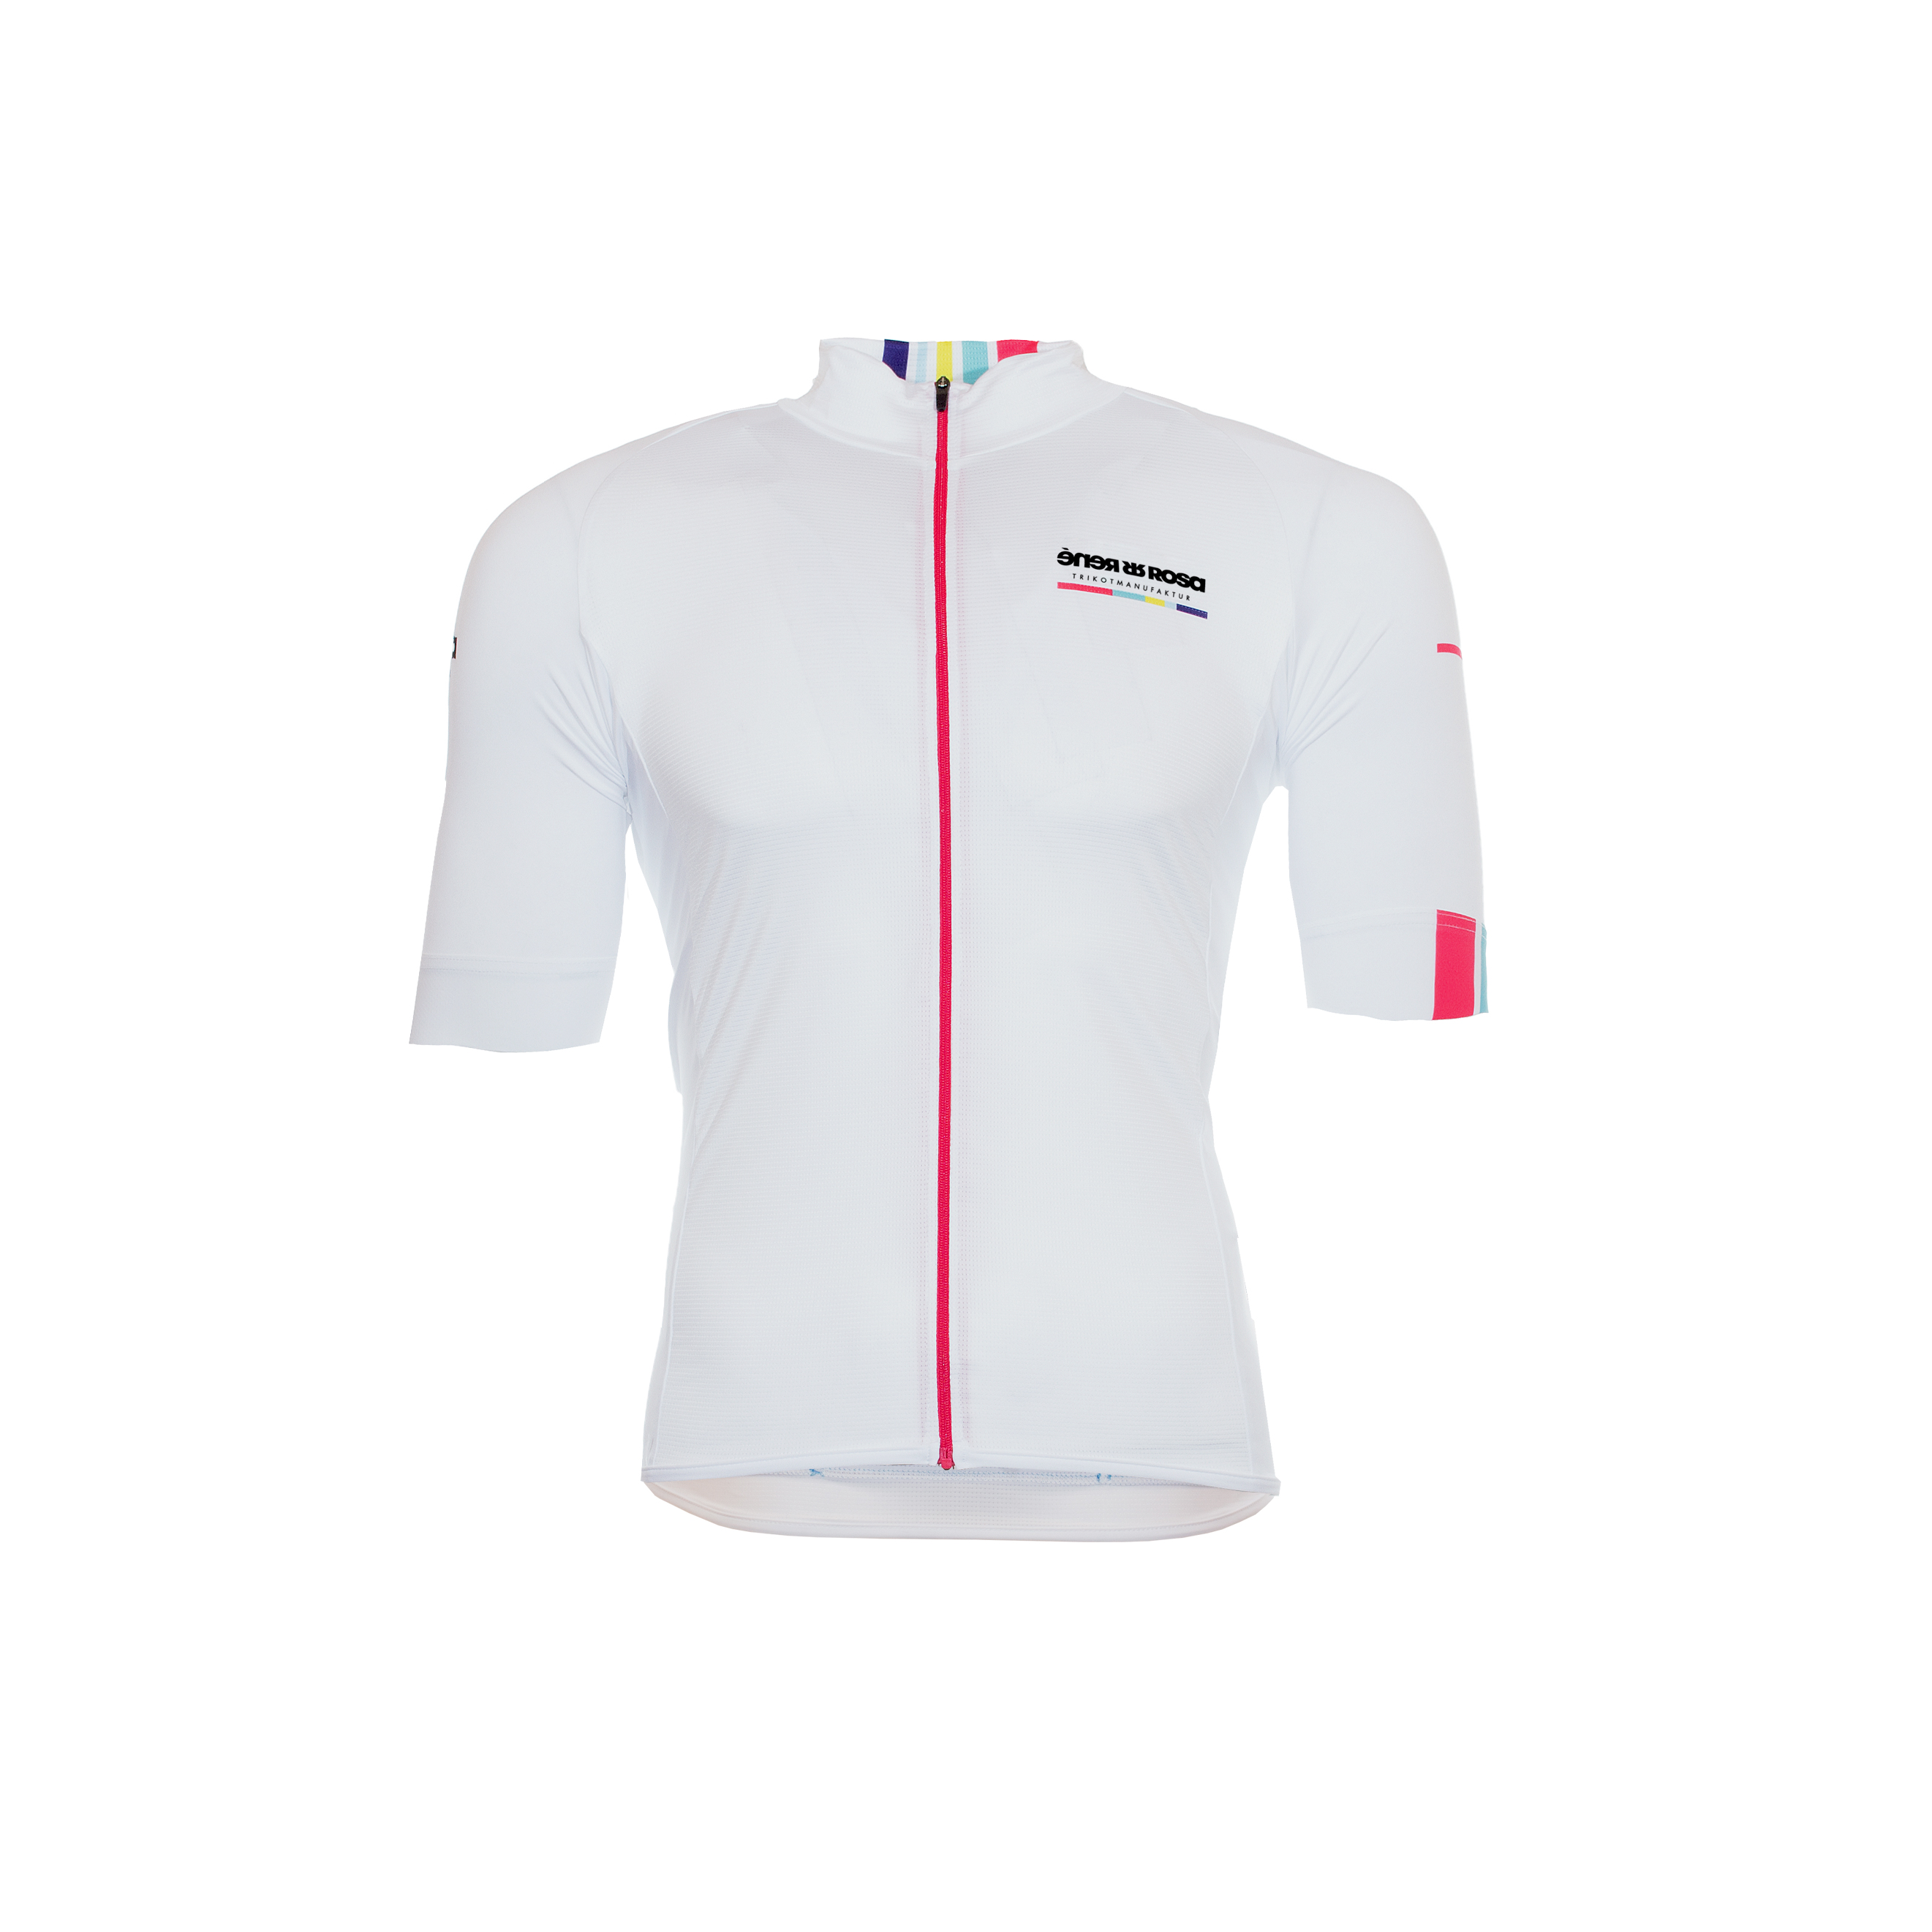 Kurzarm Radtrikot RRT044M / RR-Stripes White